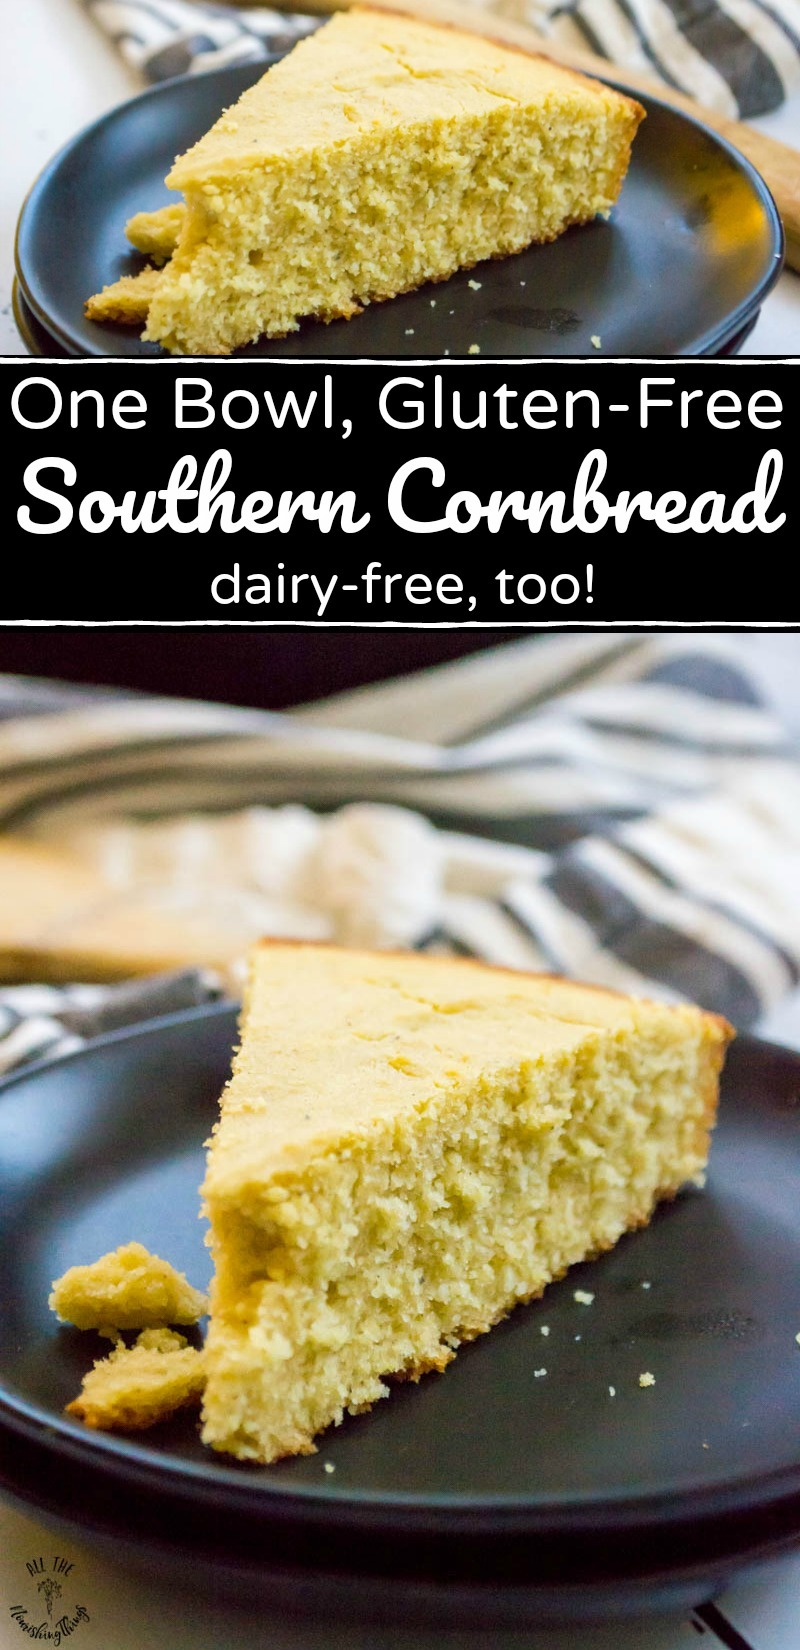 collage of 2 images of gluten-free southern cornbread on black plates with text overlay between the images